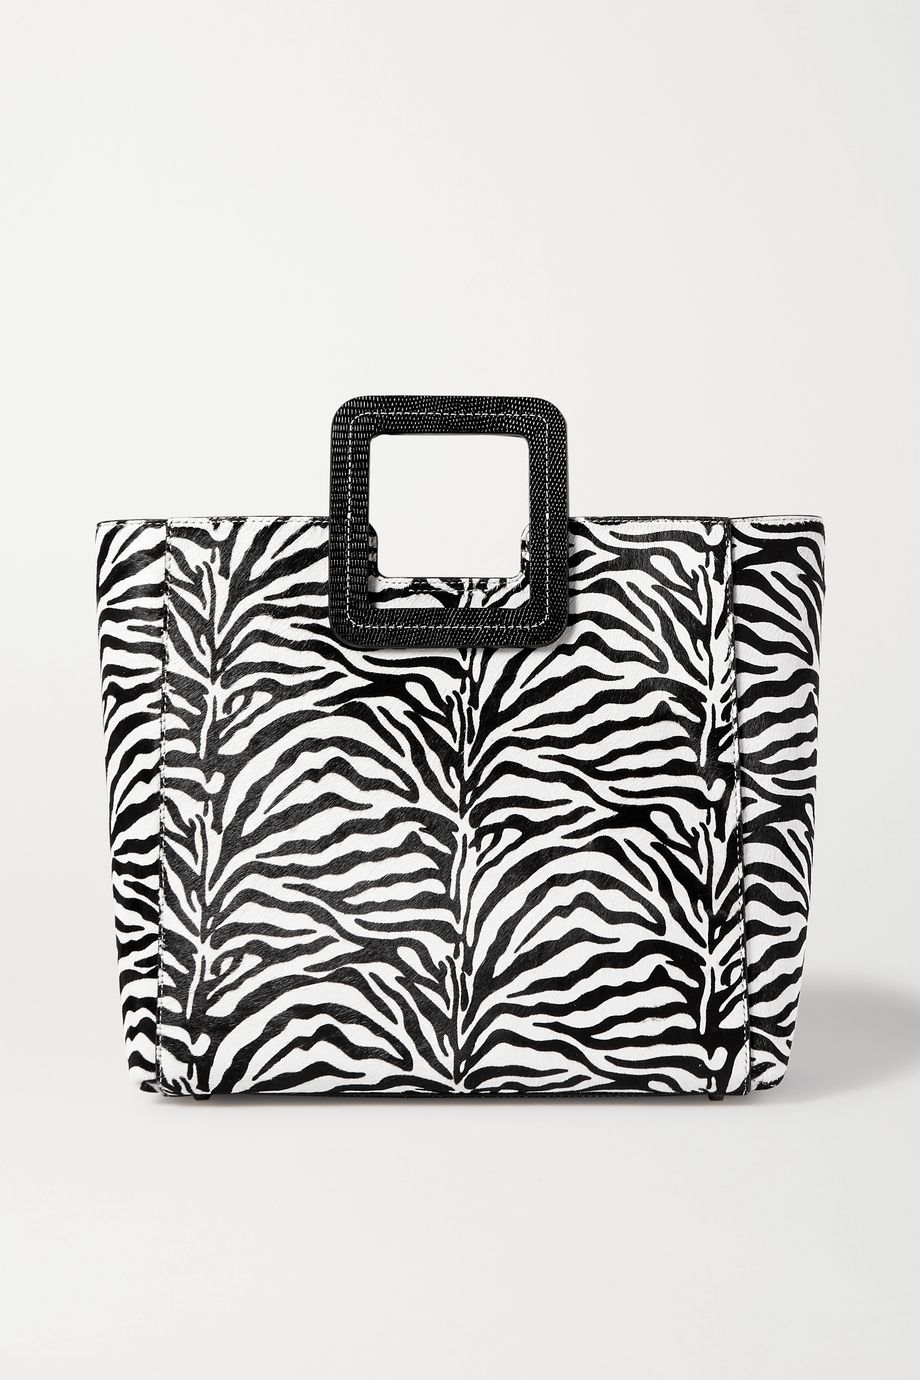 STAUD Shirley leather-trimmed zebra-print calf hair tote